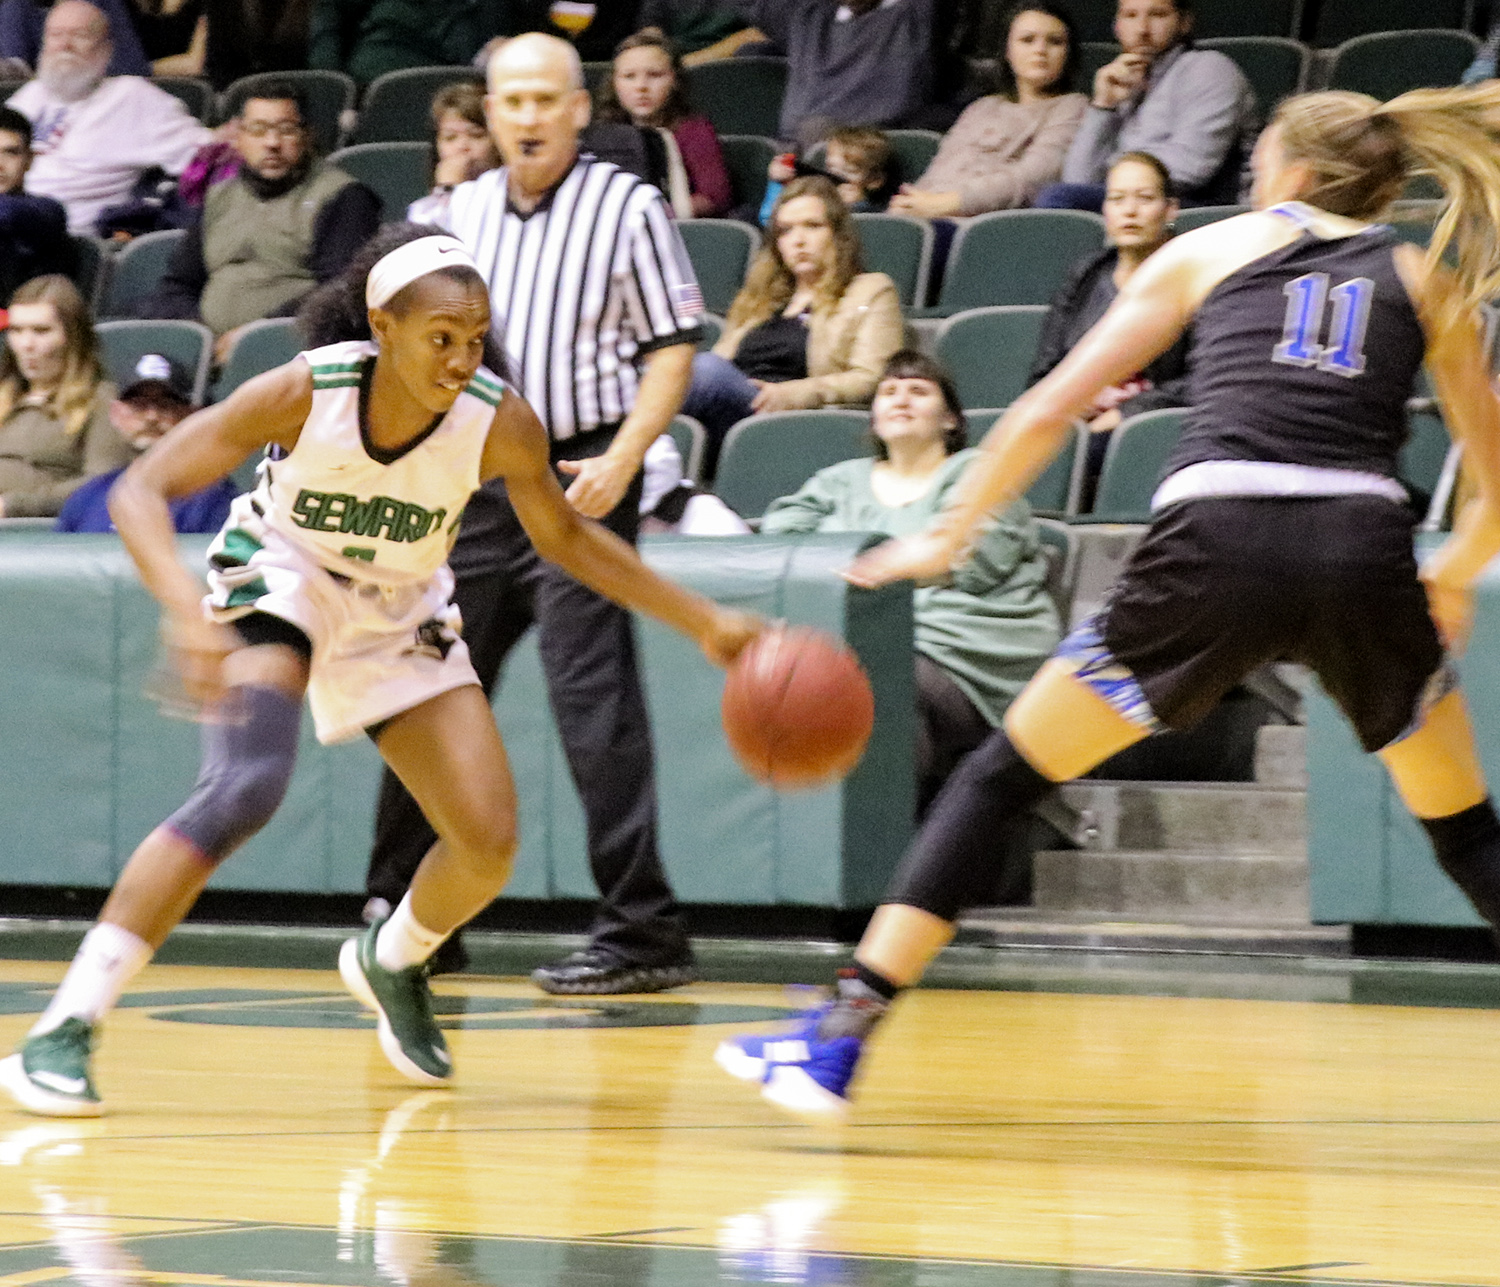 The No. 11 Lady Saints played against Barton County Community College on Jan. 26. They now sit at 19-2 overall and 11-1 in the KJCCC.